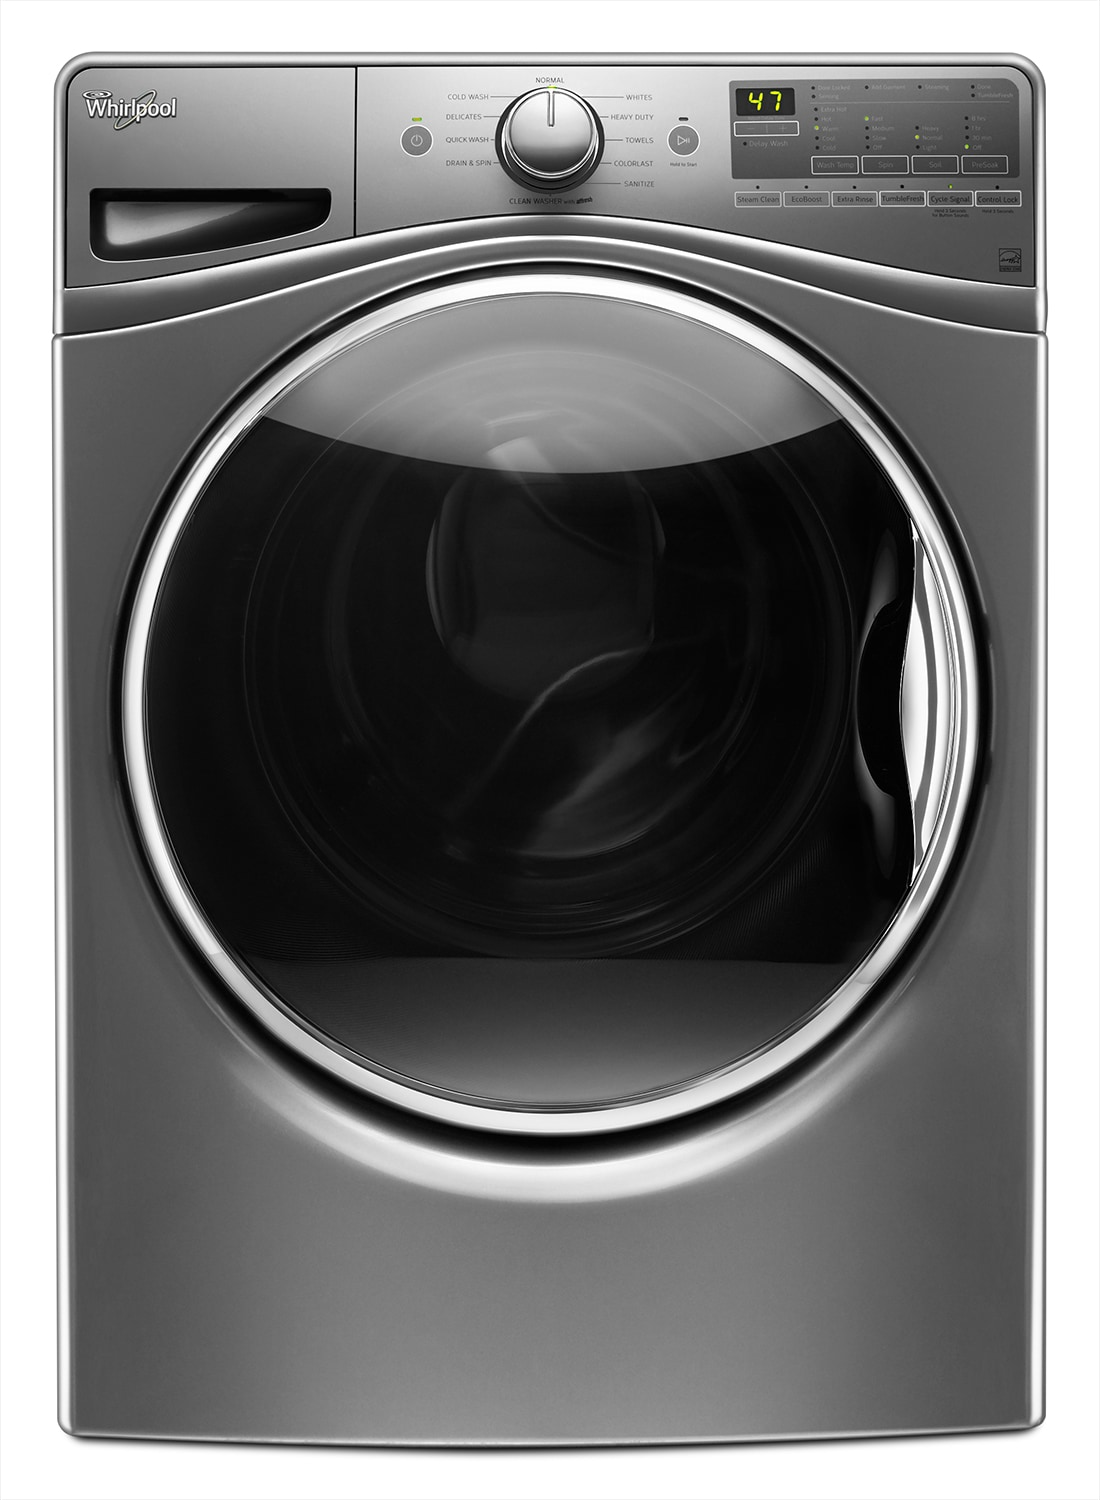 Whirlpool Chrome Shadow Front-Load Washer (5.2 Cu. Ft. IEC) - WFW85HEFC